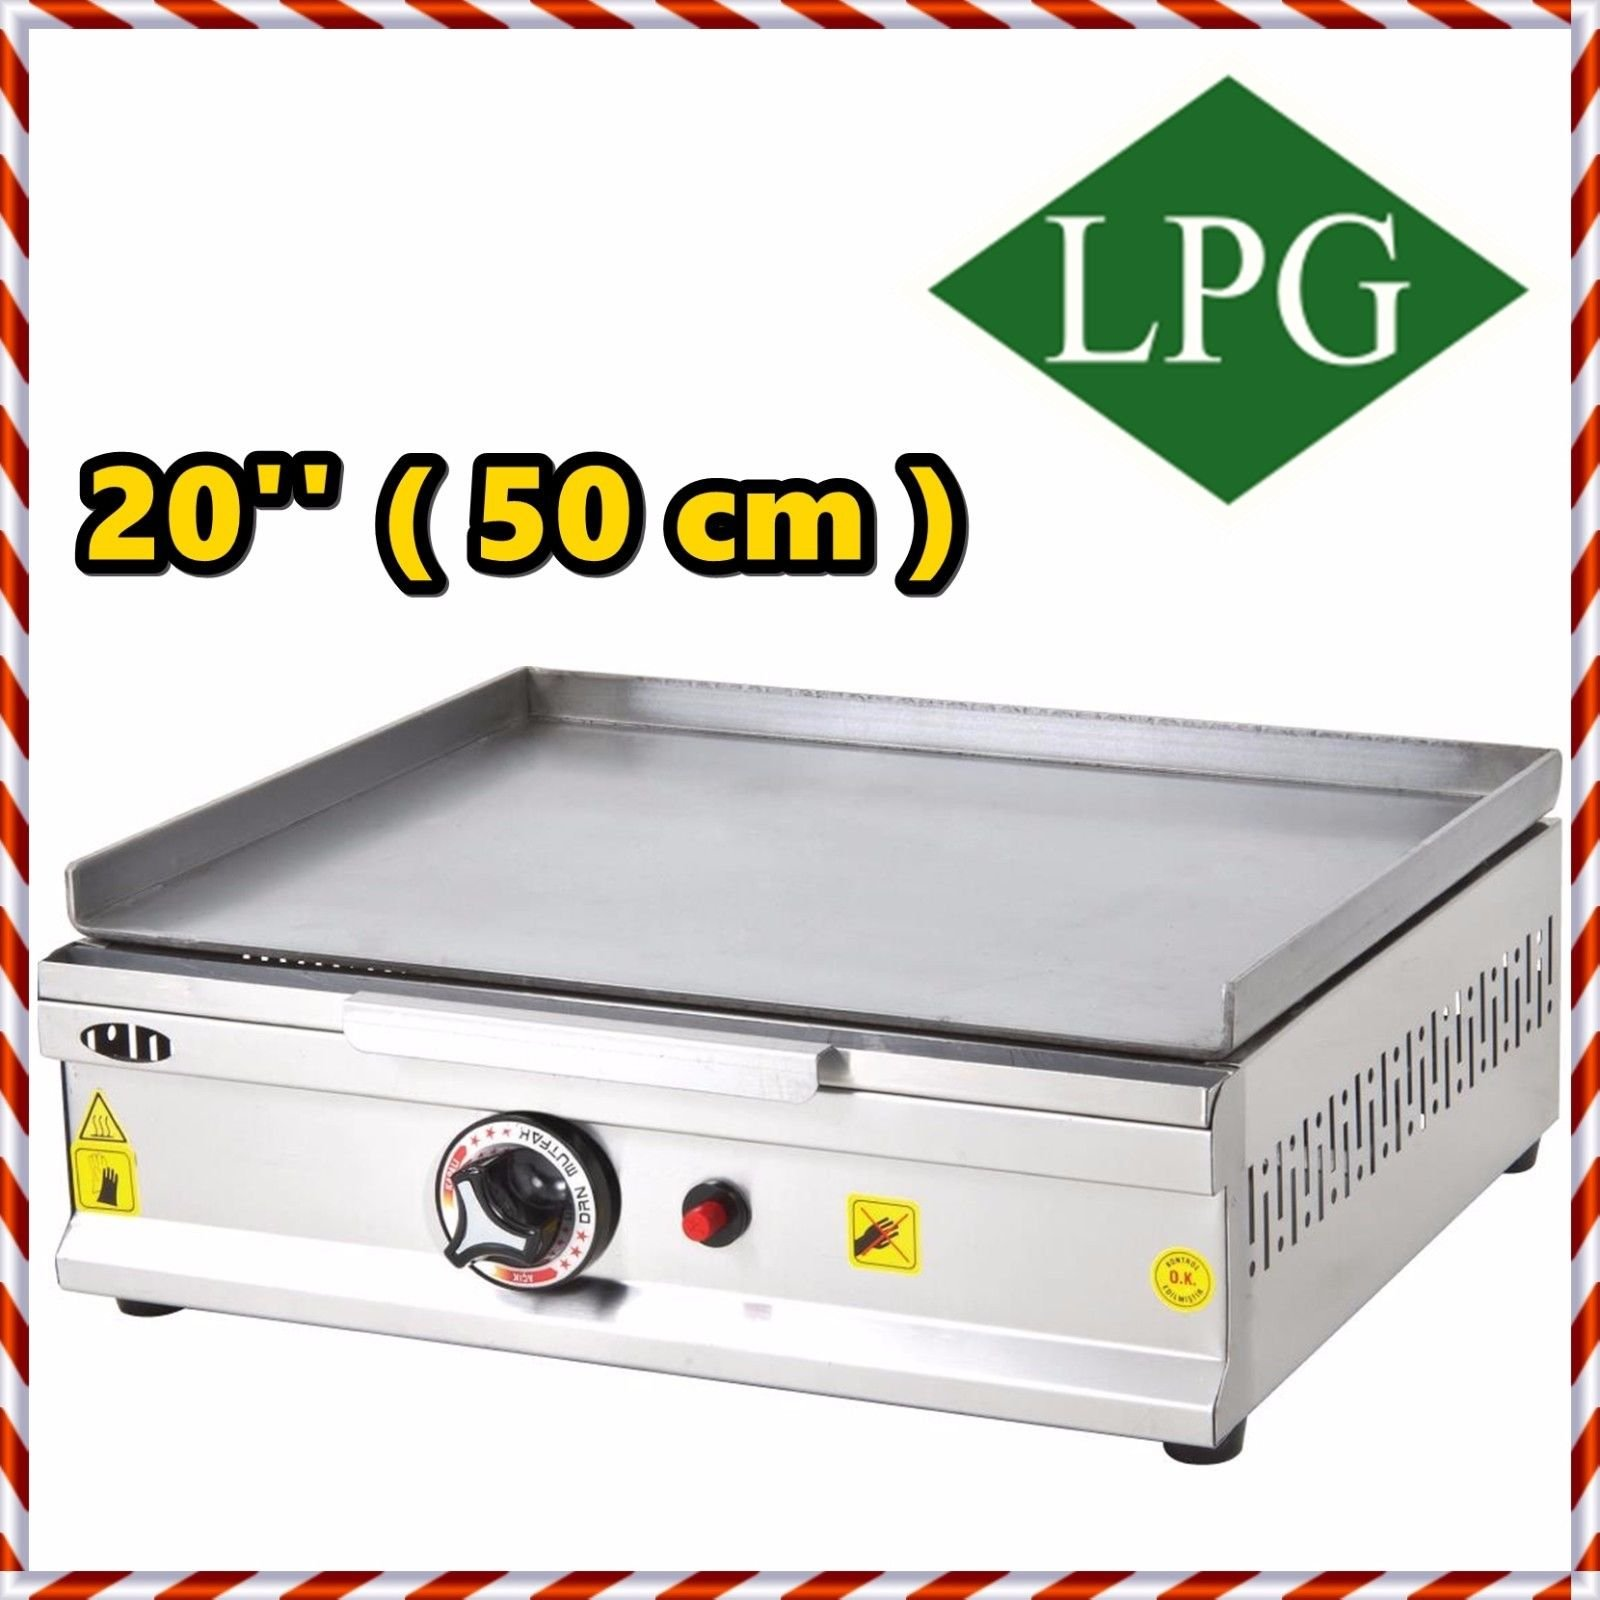 20 '' ( 50 cm ) PROPANE GAS Commercial Kitchen Equipment Countertop Flat Top Grill Restaurant Cooktop Manual Griddle Propan LPG